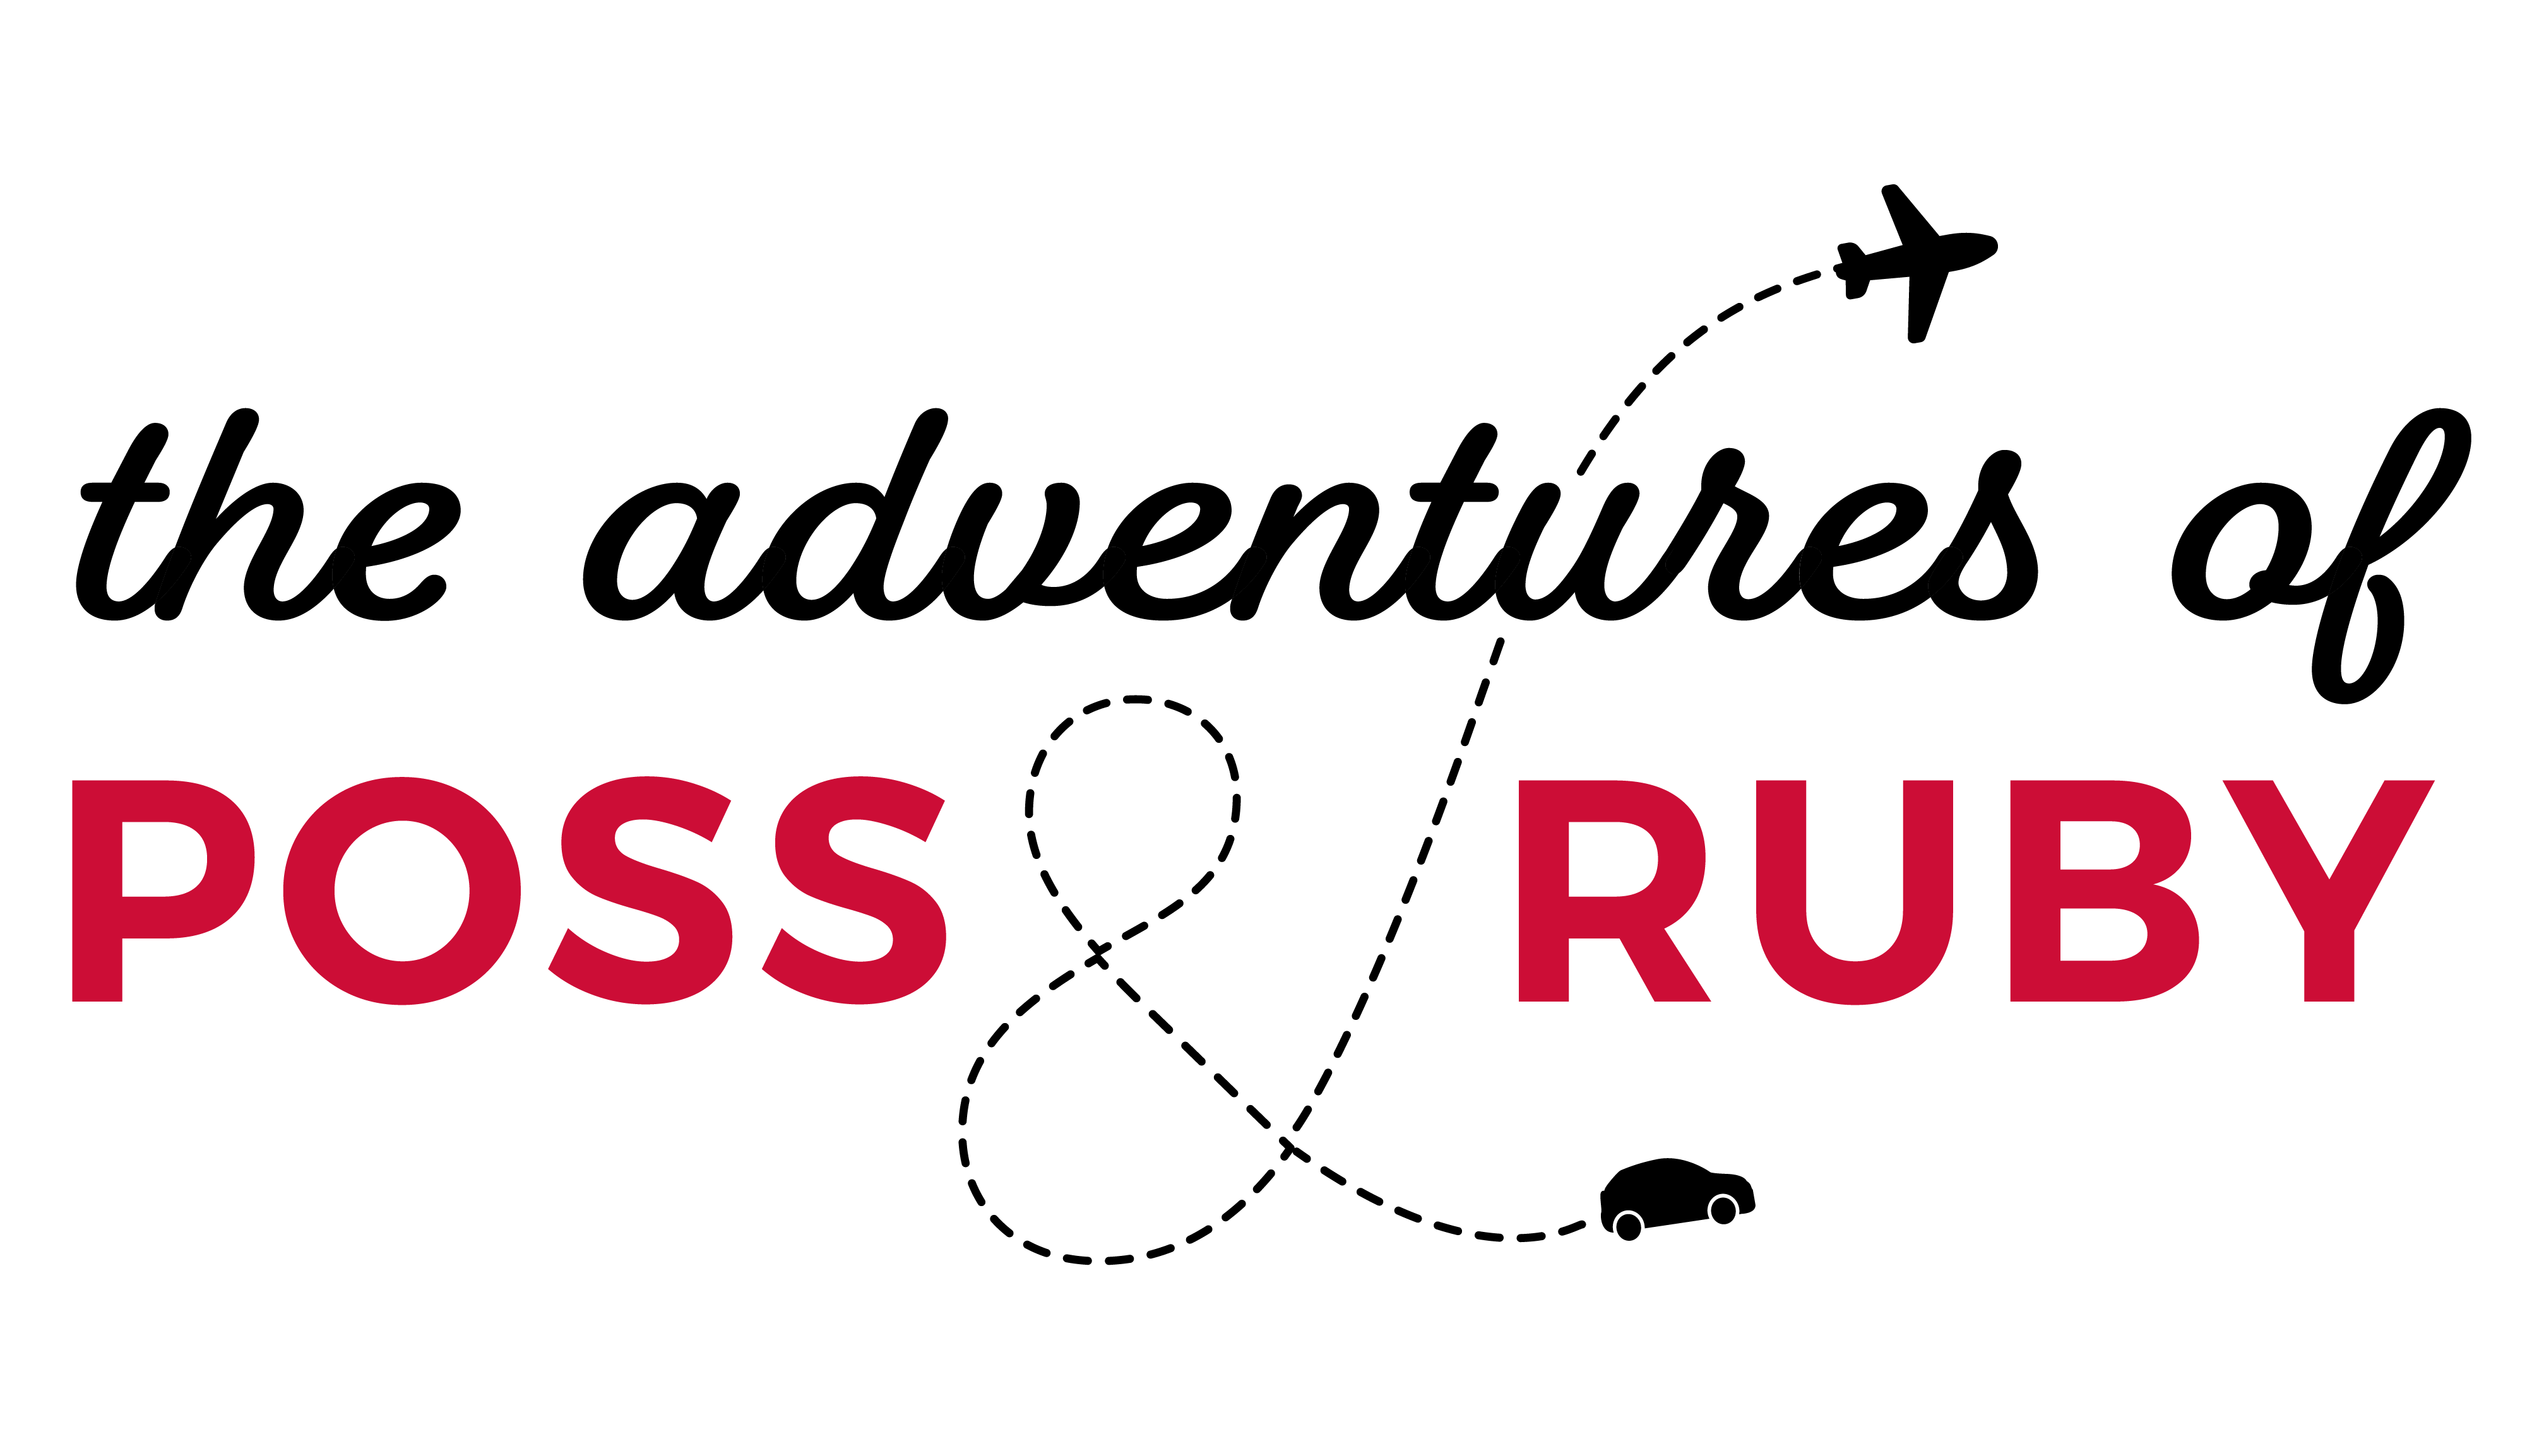 The Adventures of Poss & Ruby